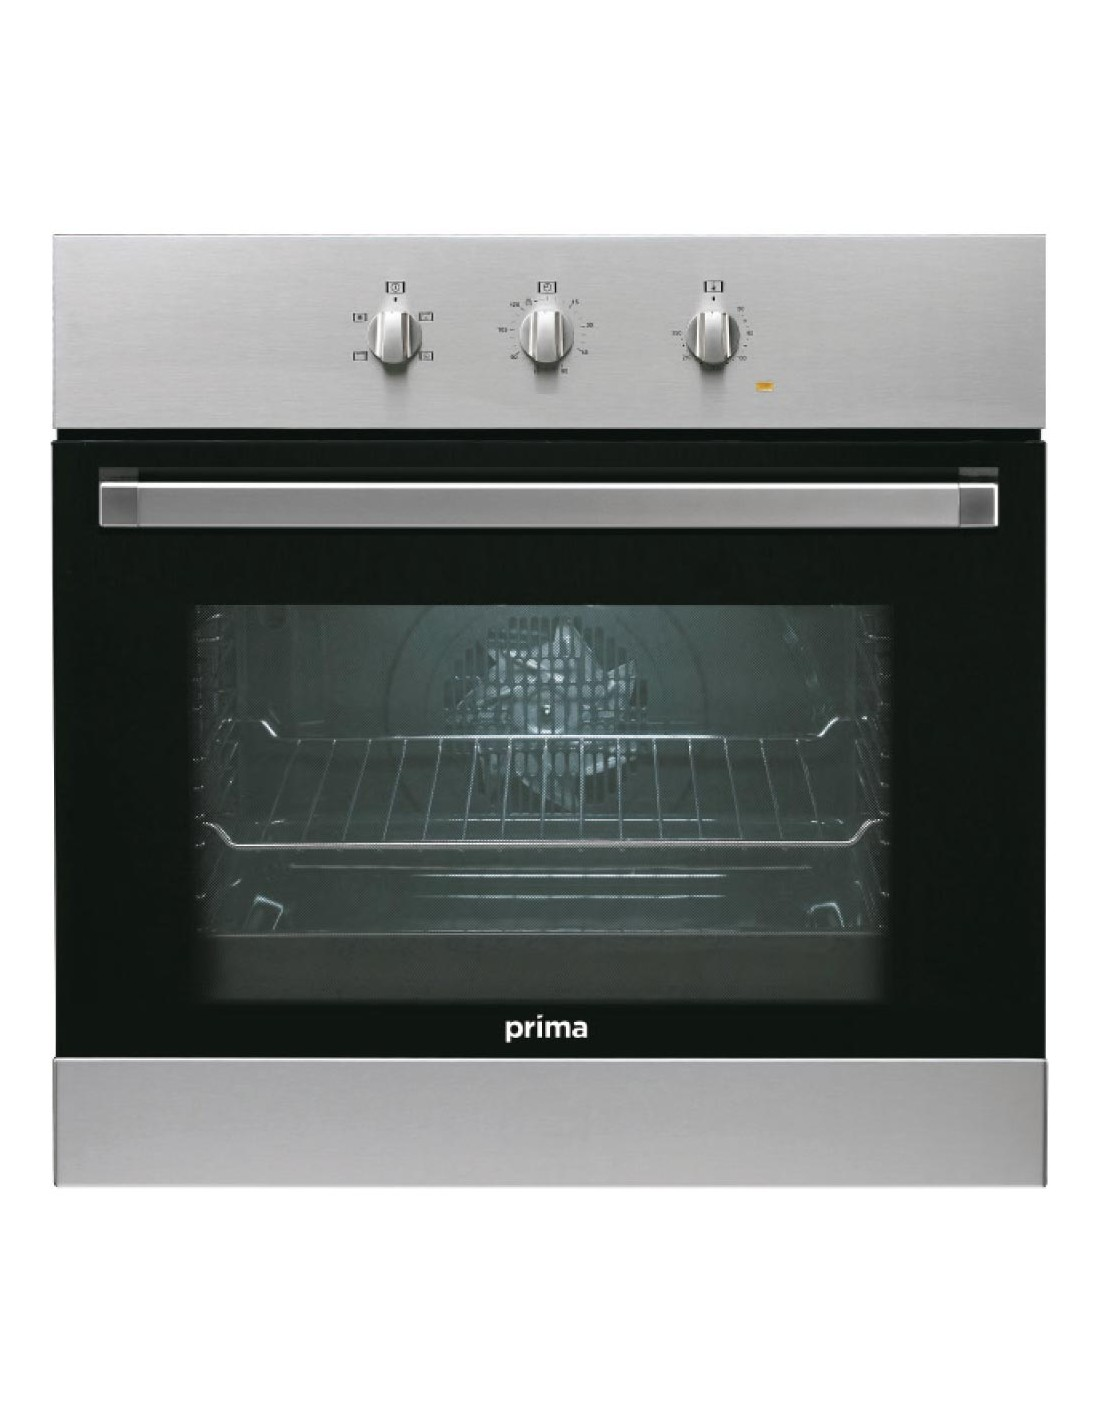 Prima Built in Single Electric Oven Plug in 13 Amp